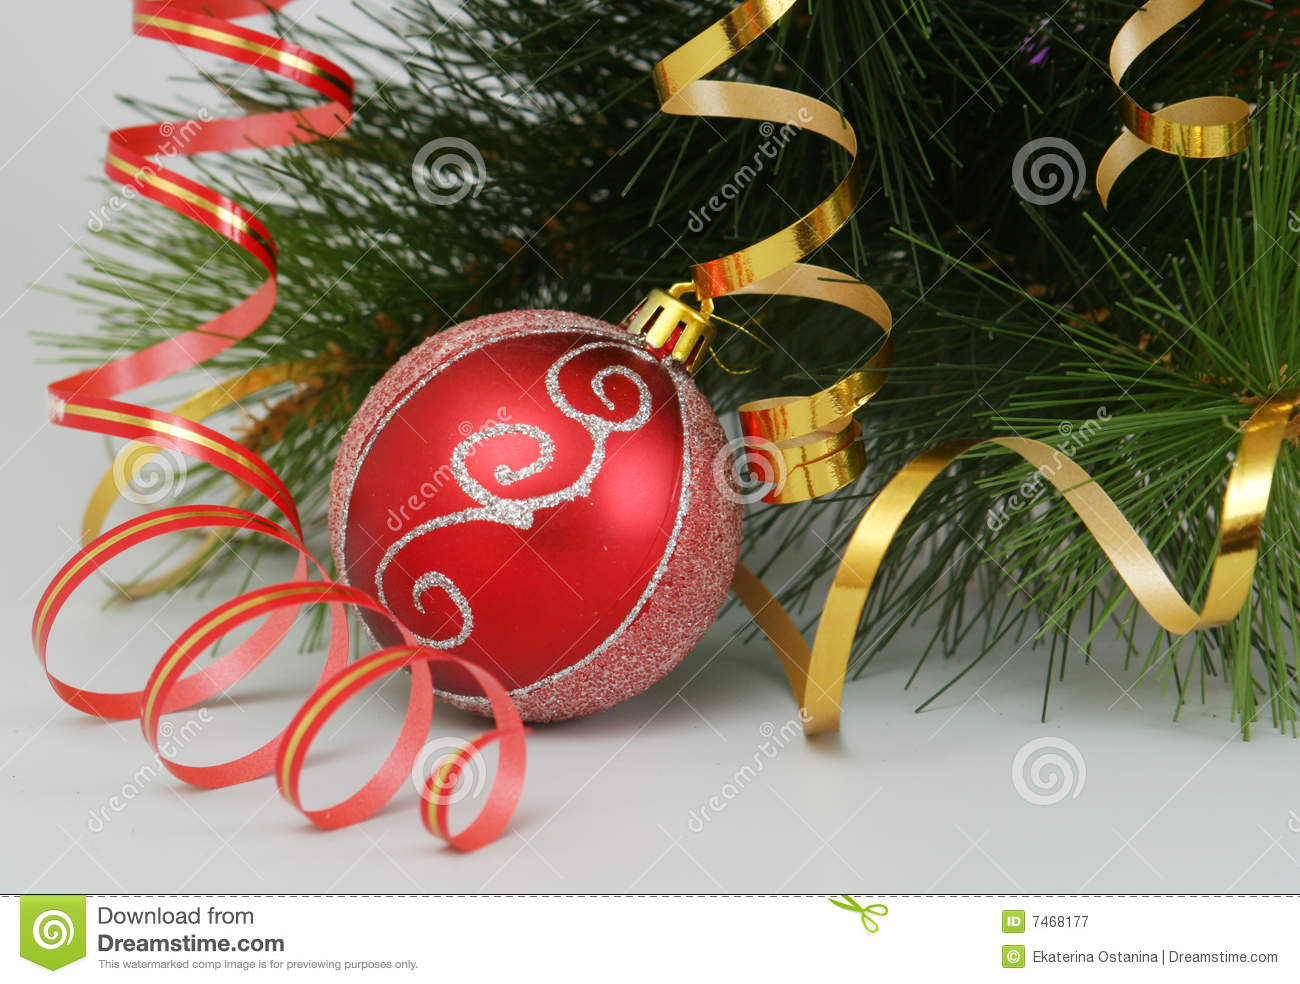 The New Year s sphere and fur-tree branch are on a